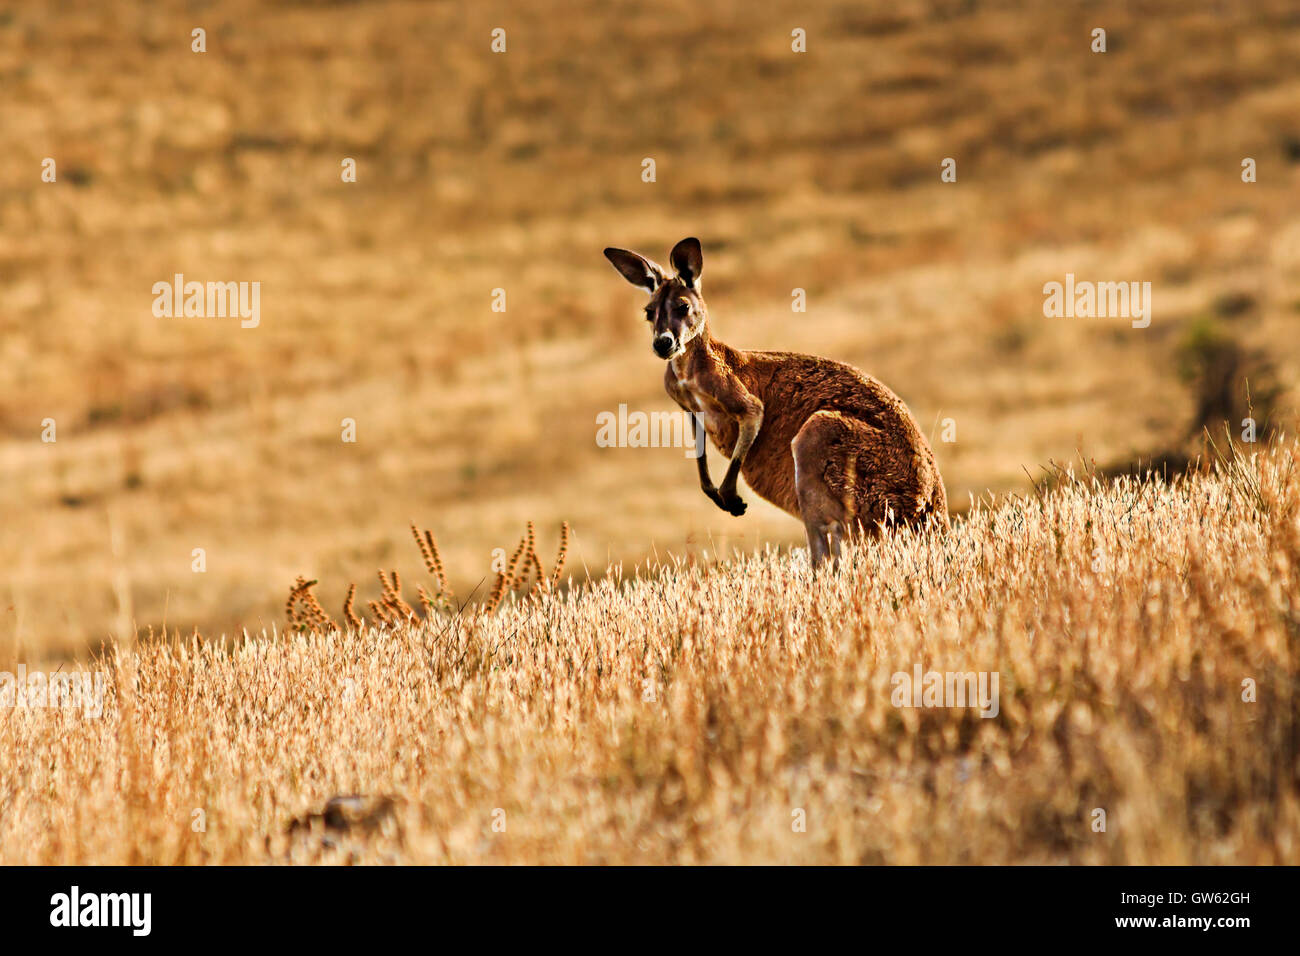 single yellow tall kangaroo wallaby in Flinders Ranges National park of South Australia. Standing still alert against - Stock Image